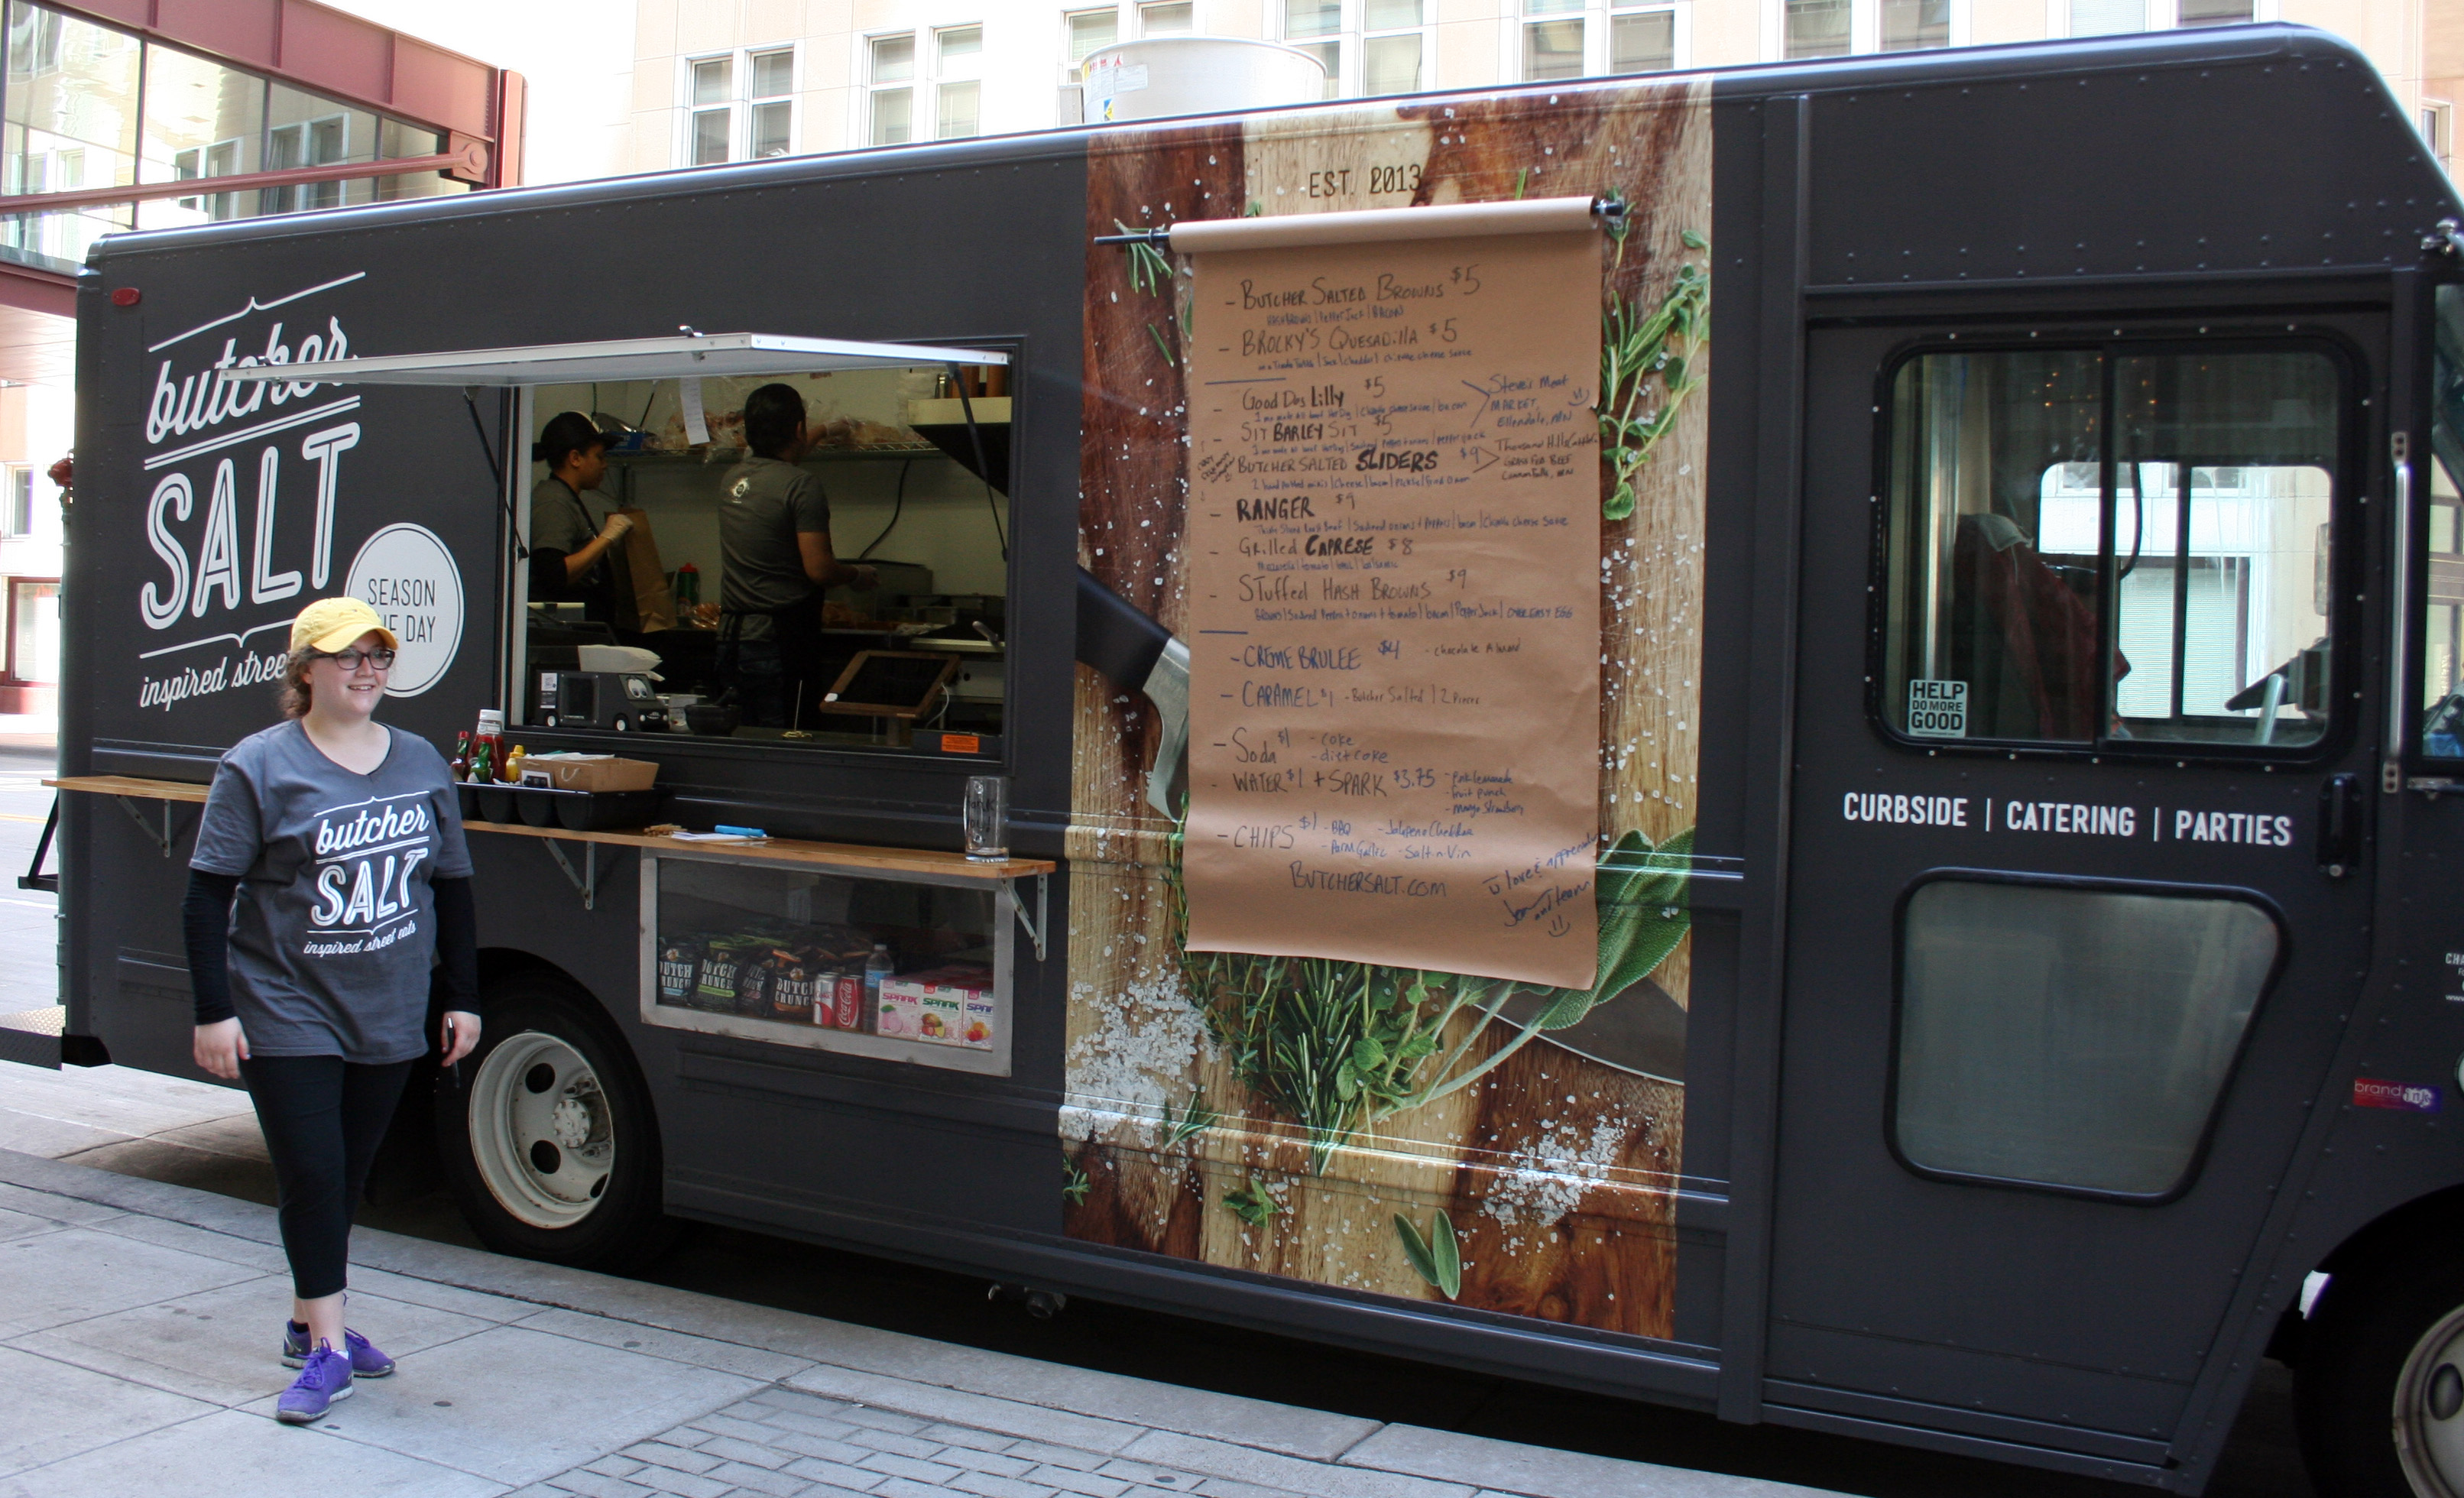 The Best 8 Food Truck Menu Ideas 6 Costs Less Than 5 To Make